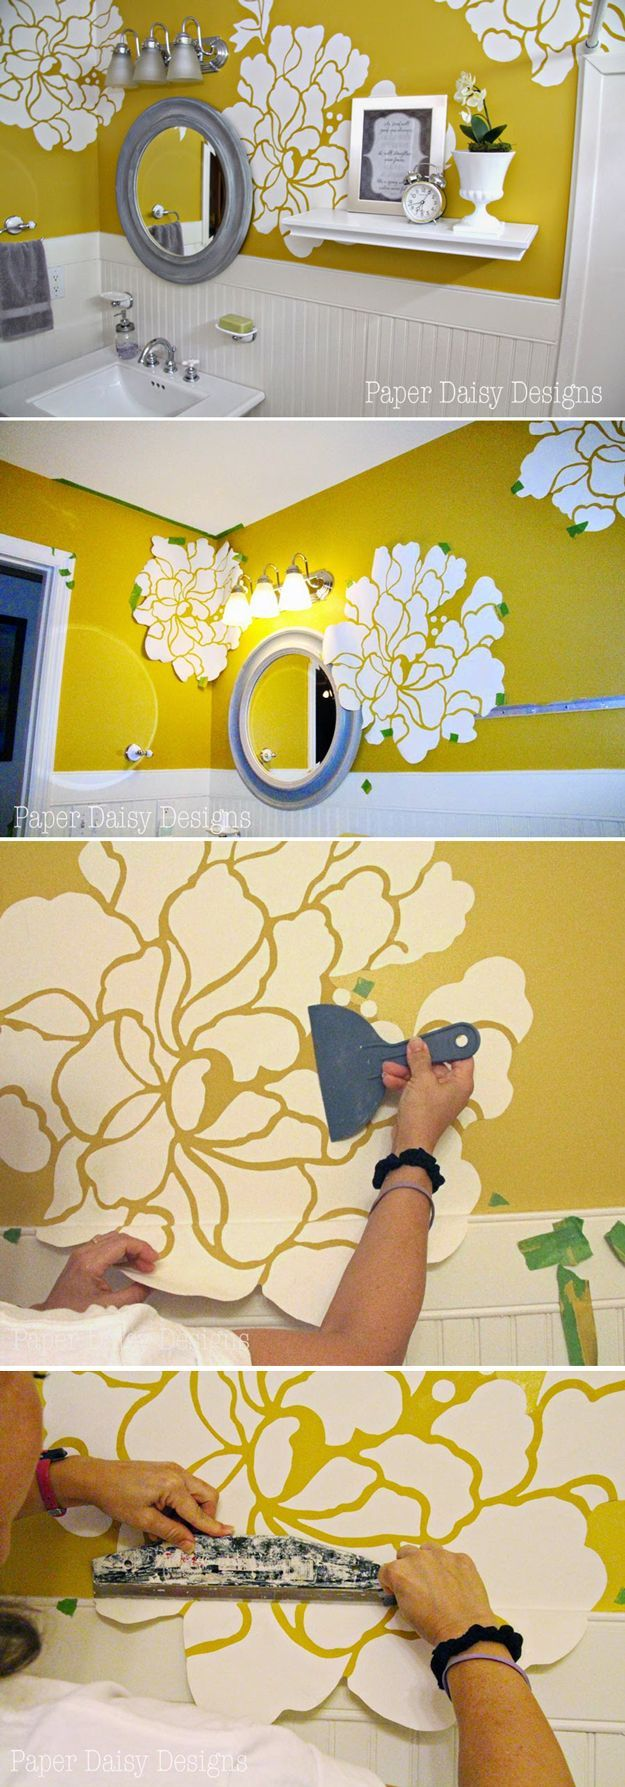 Love the wallpaper idea! Wonder if I can use ModPodge, or something similar to make it not quite so permanent. Anthropologie Wall Paper Hack | DIY Home Decor Anthropologie Hack Design Ideas by DIY Ready at http://diyready.com/diy-decor-anthropologie-hacks/